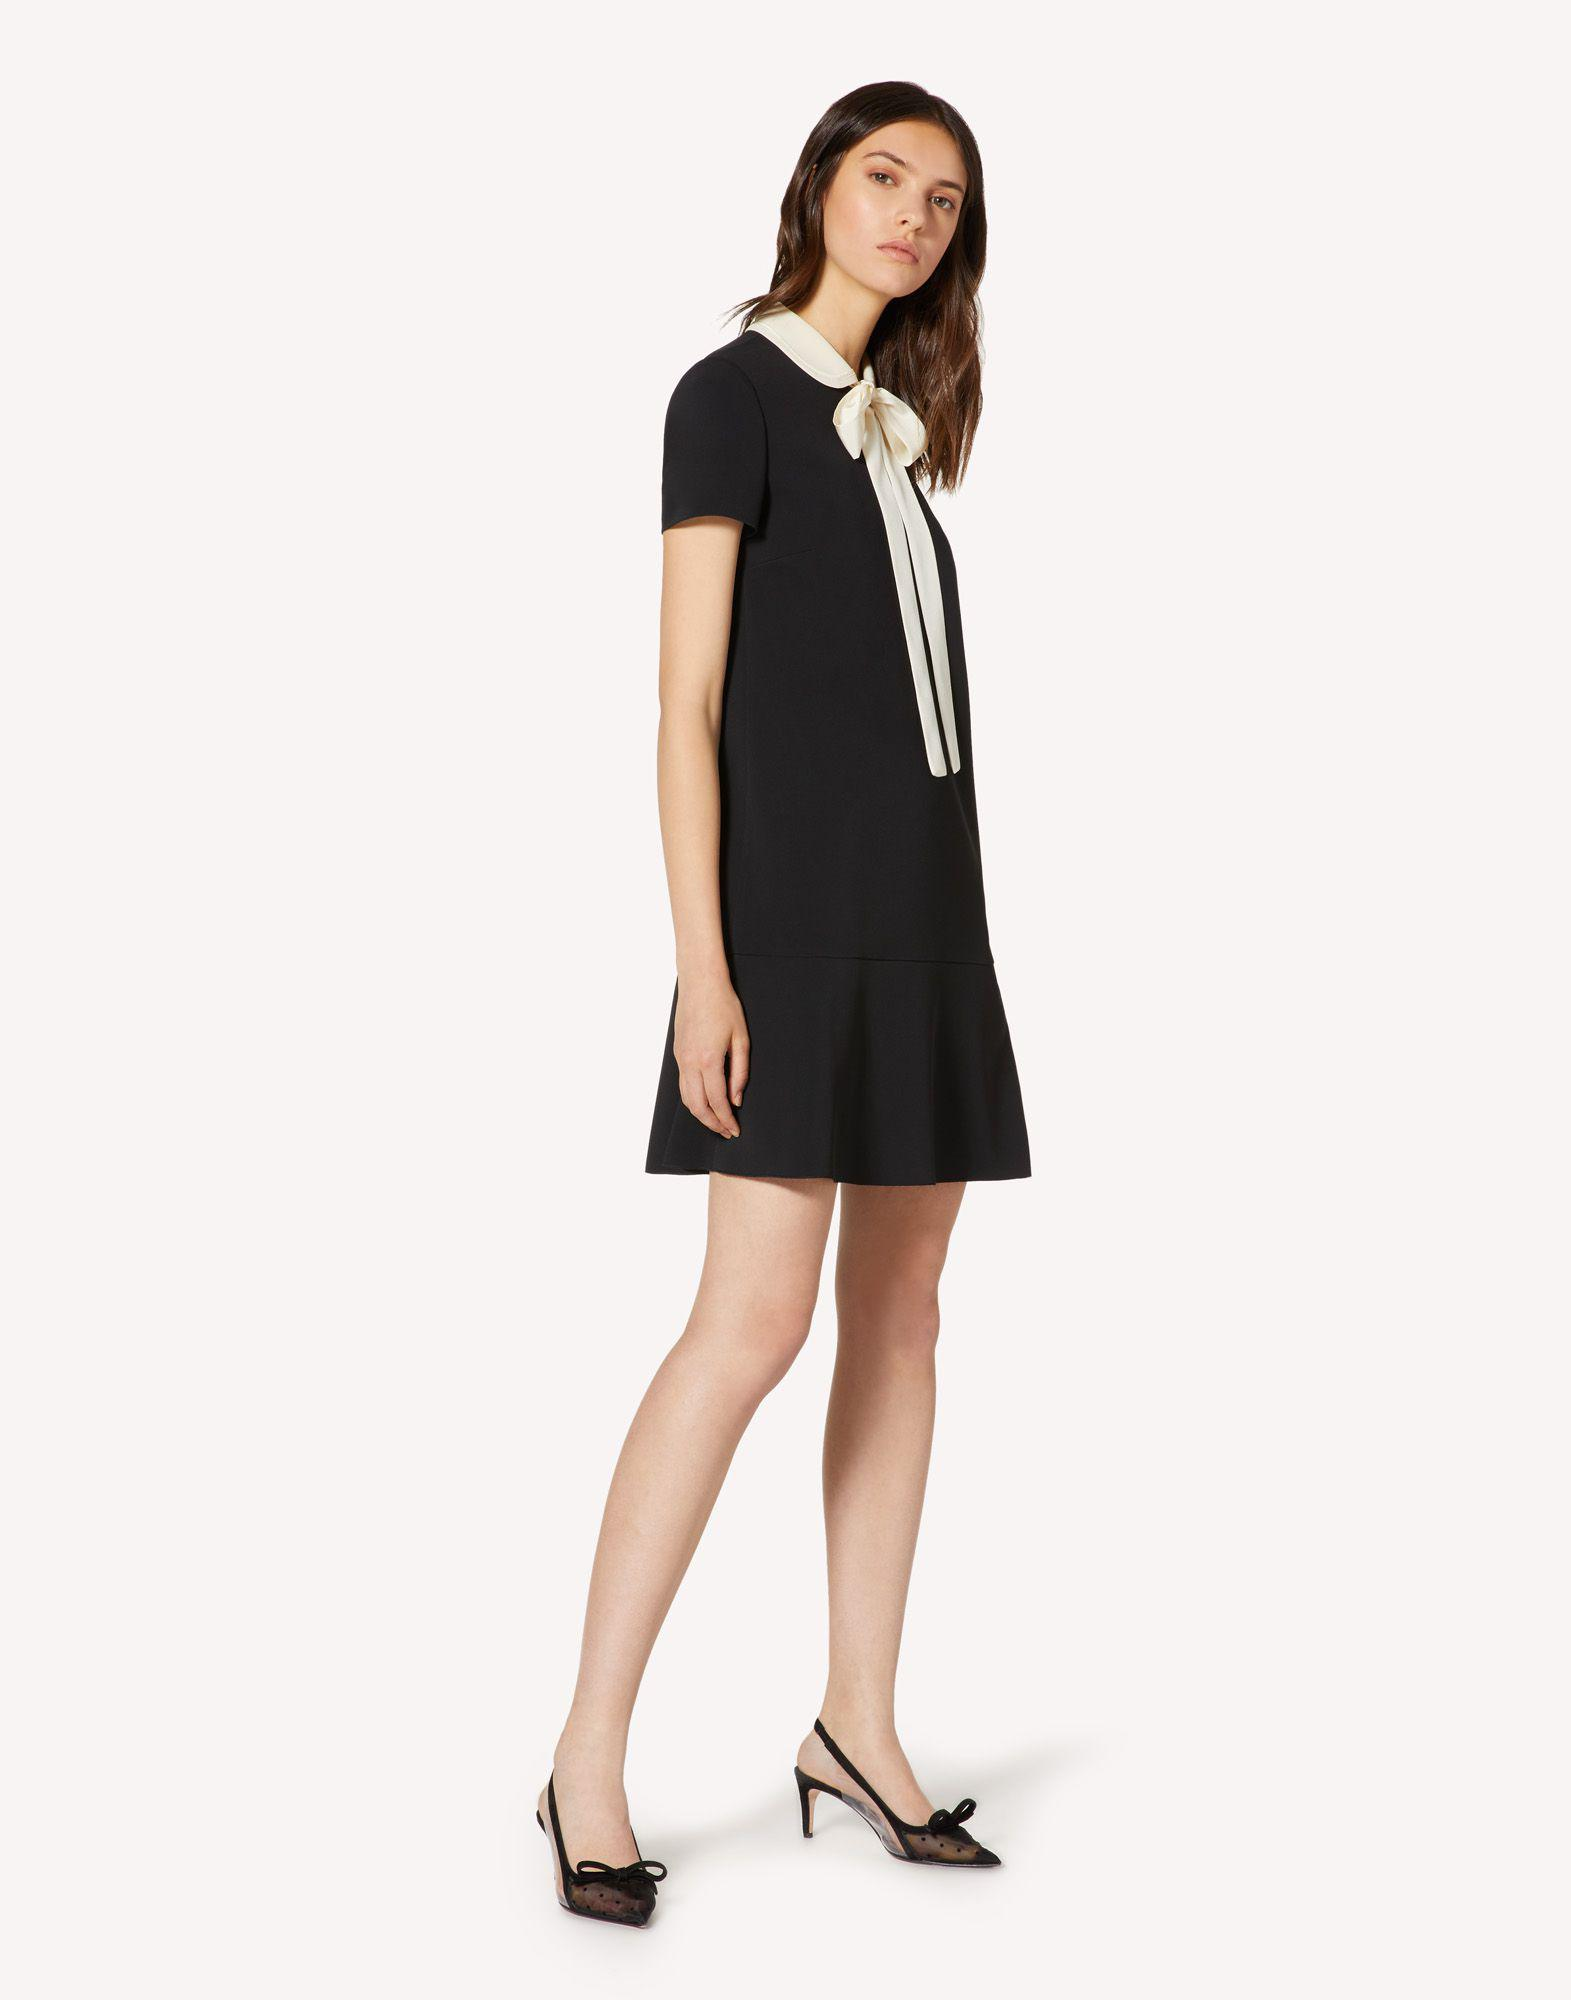 FRISOTTINO DRESS WITH COLLAR DETAIL 2